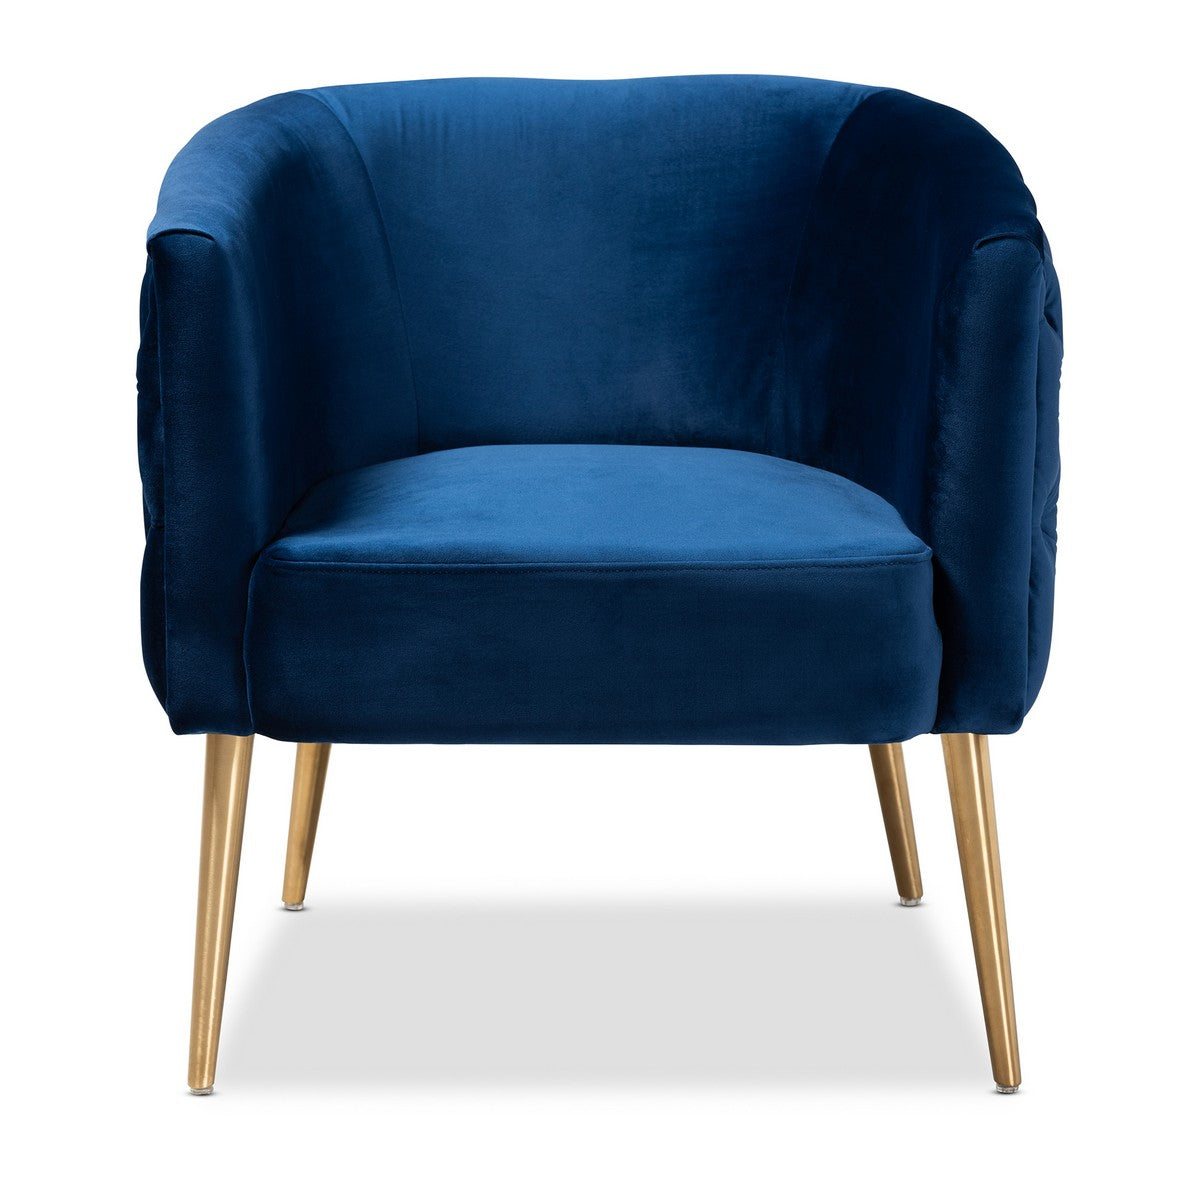 Baxton Studio Marcelle Glam and Luxe Navy Blue Velvet Fabric Upholstered Brushed Gold Finished Accent Chair Baxton Studio-chairs-Minimal And Modern - 1